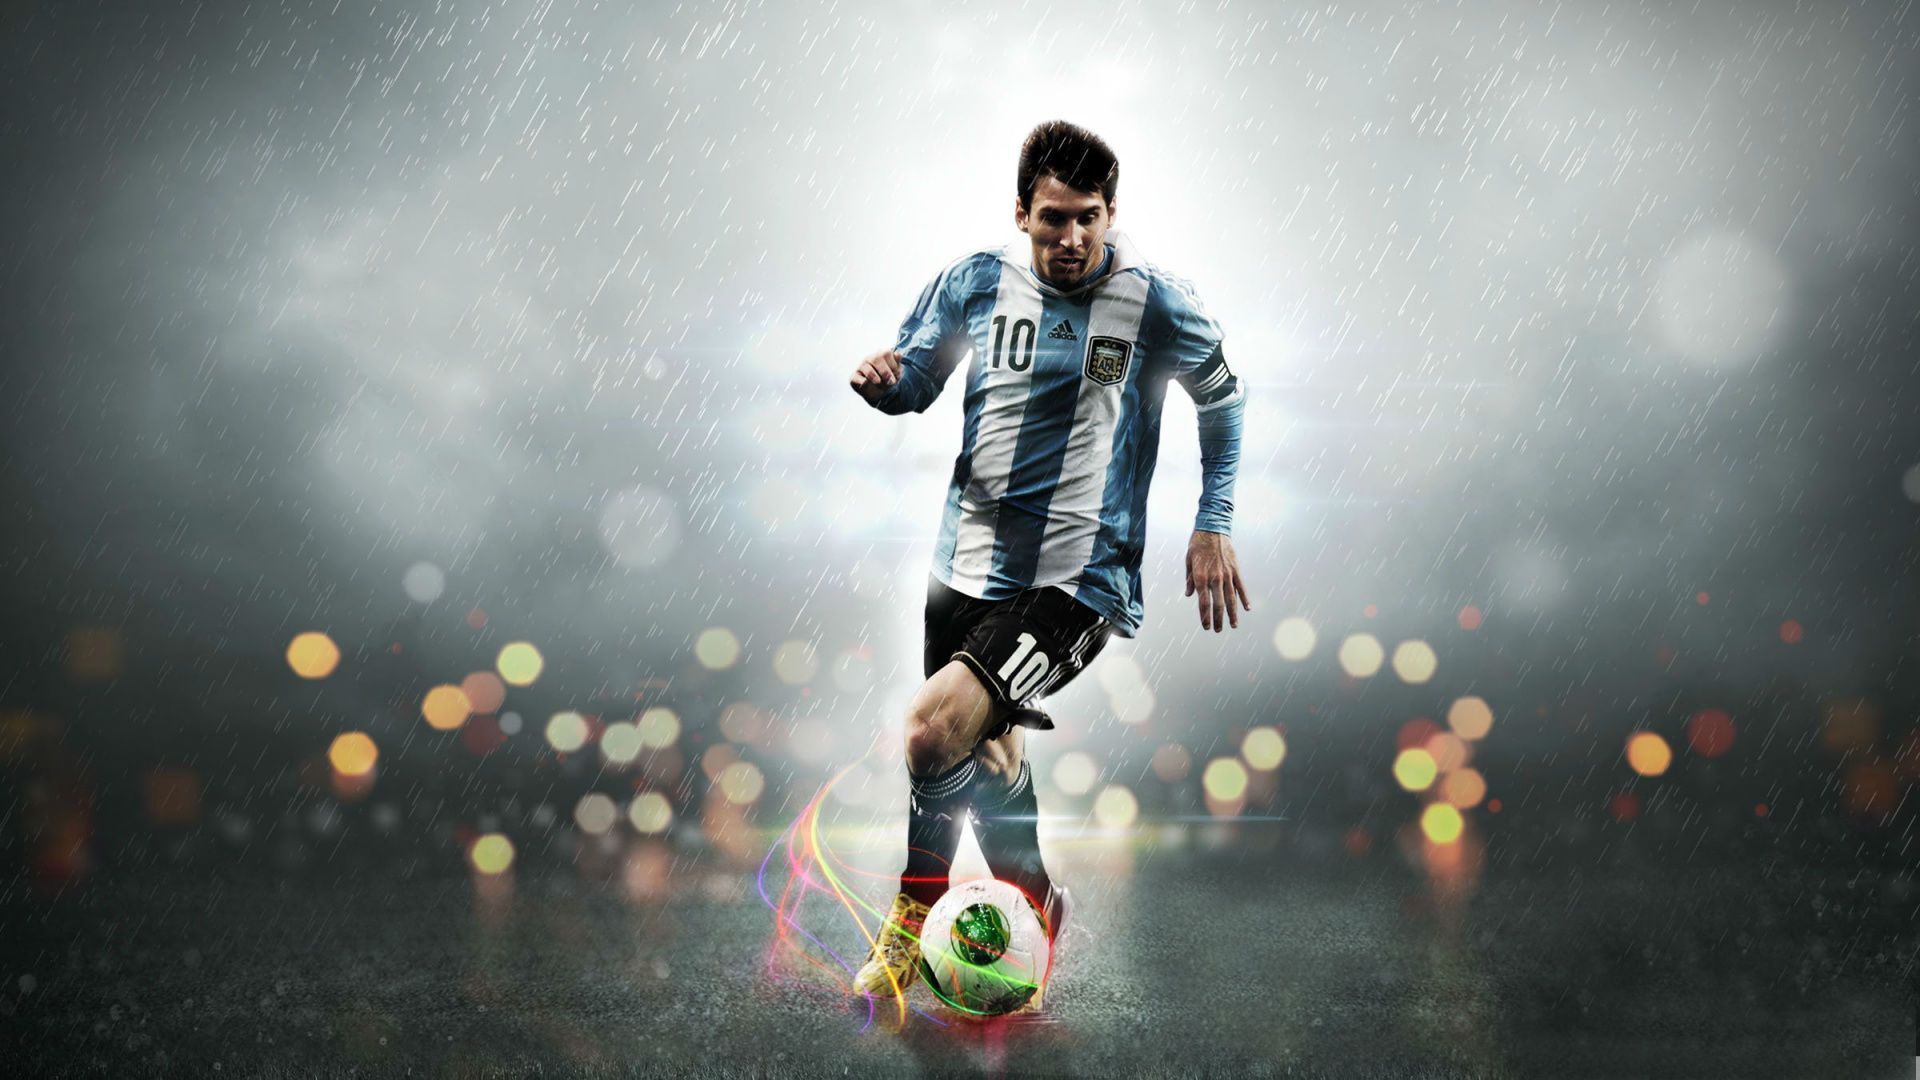 Wallpaper Of Soccer Players Lionel Messi Messi